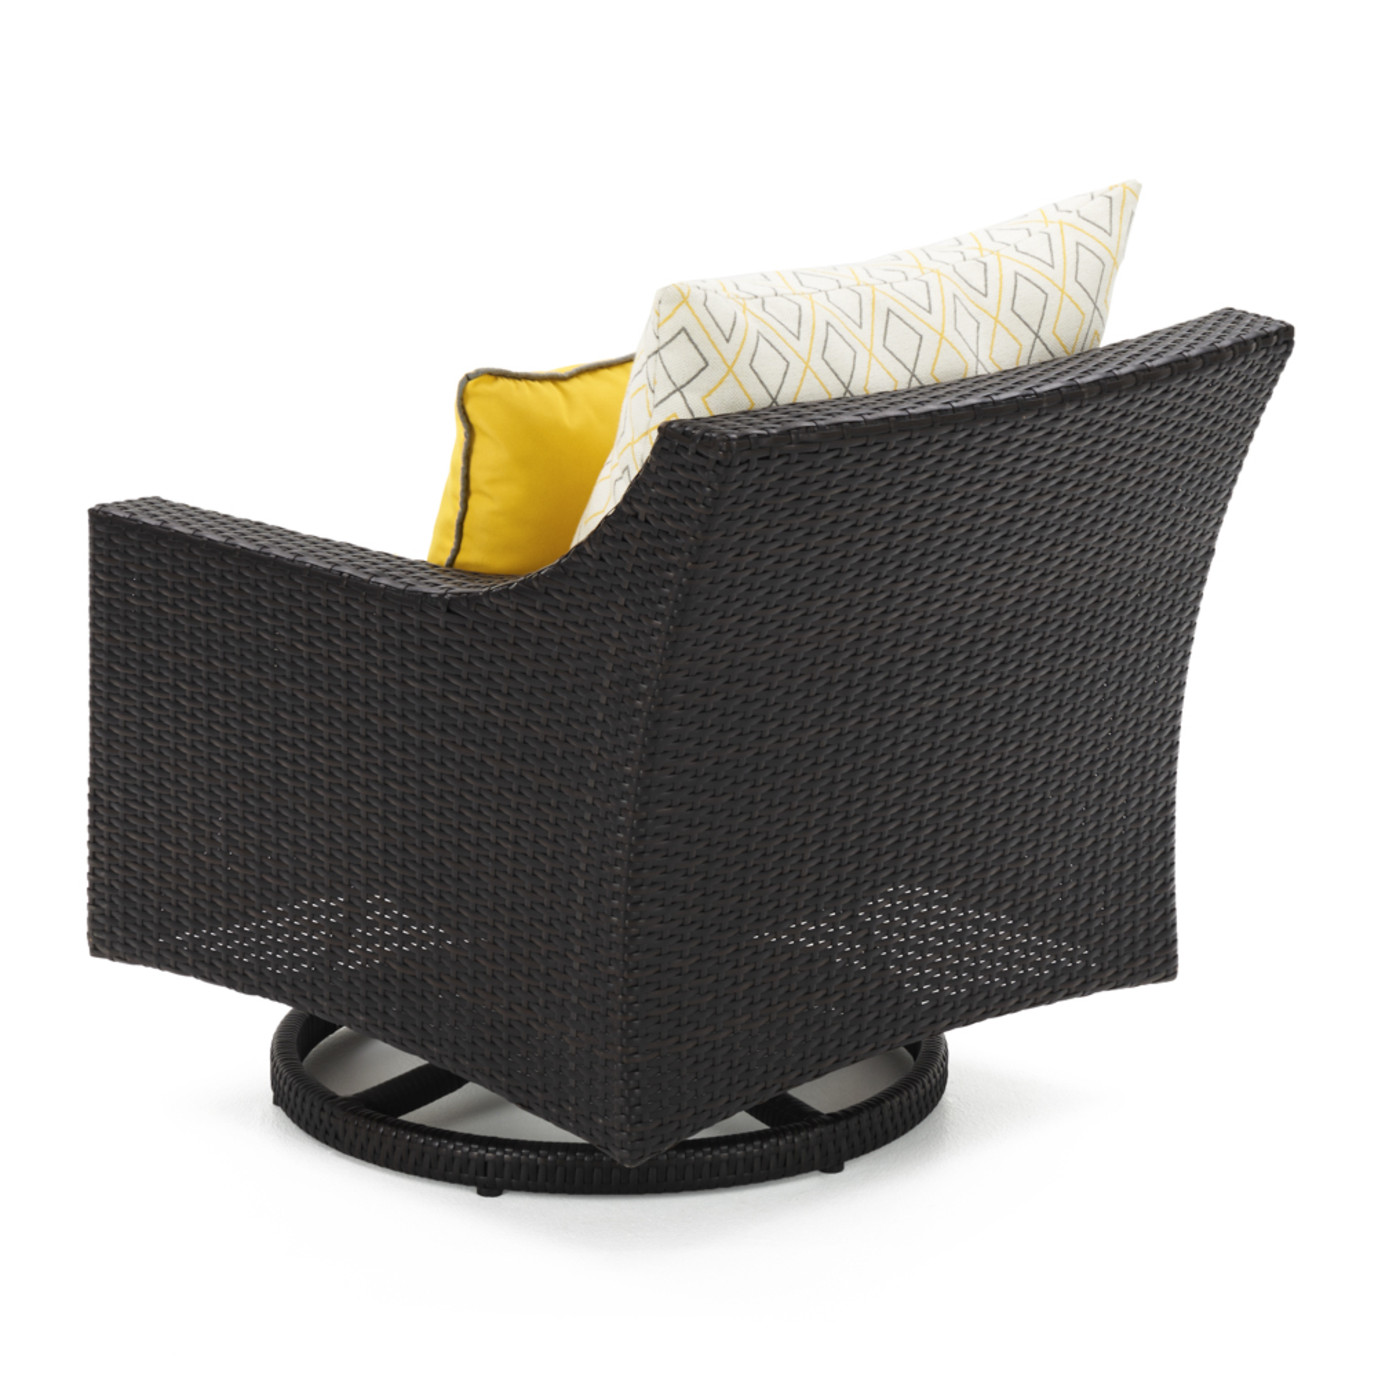 Deco™ Deluxe 5pc Motion Club & Ottoman Set - Sunflower Yellow